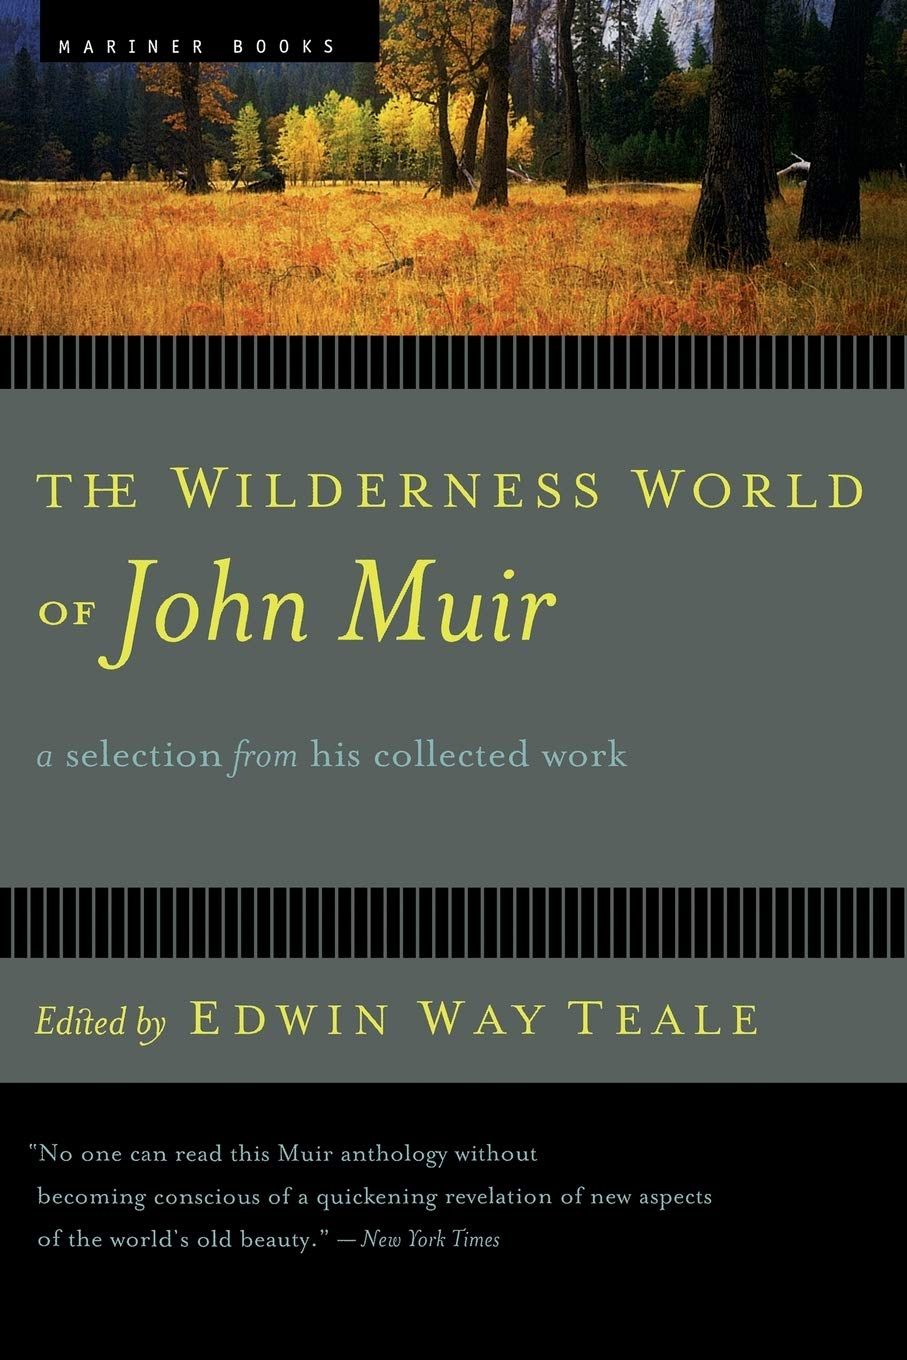 Download The Wilderness World Of John Muir 